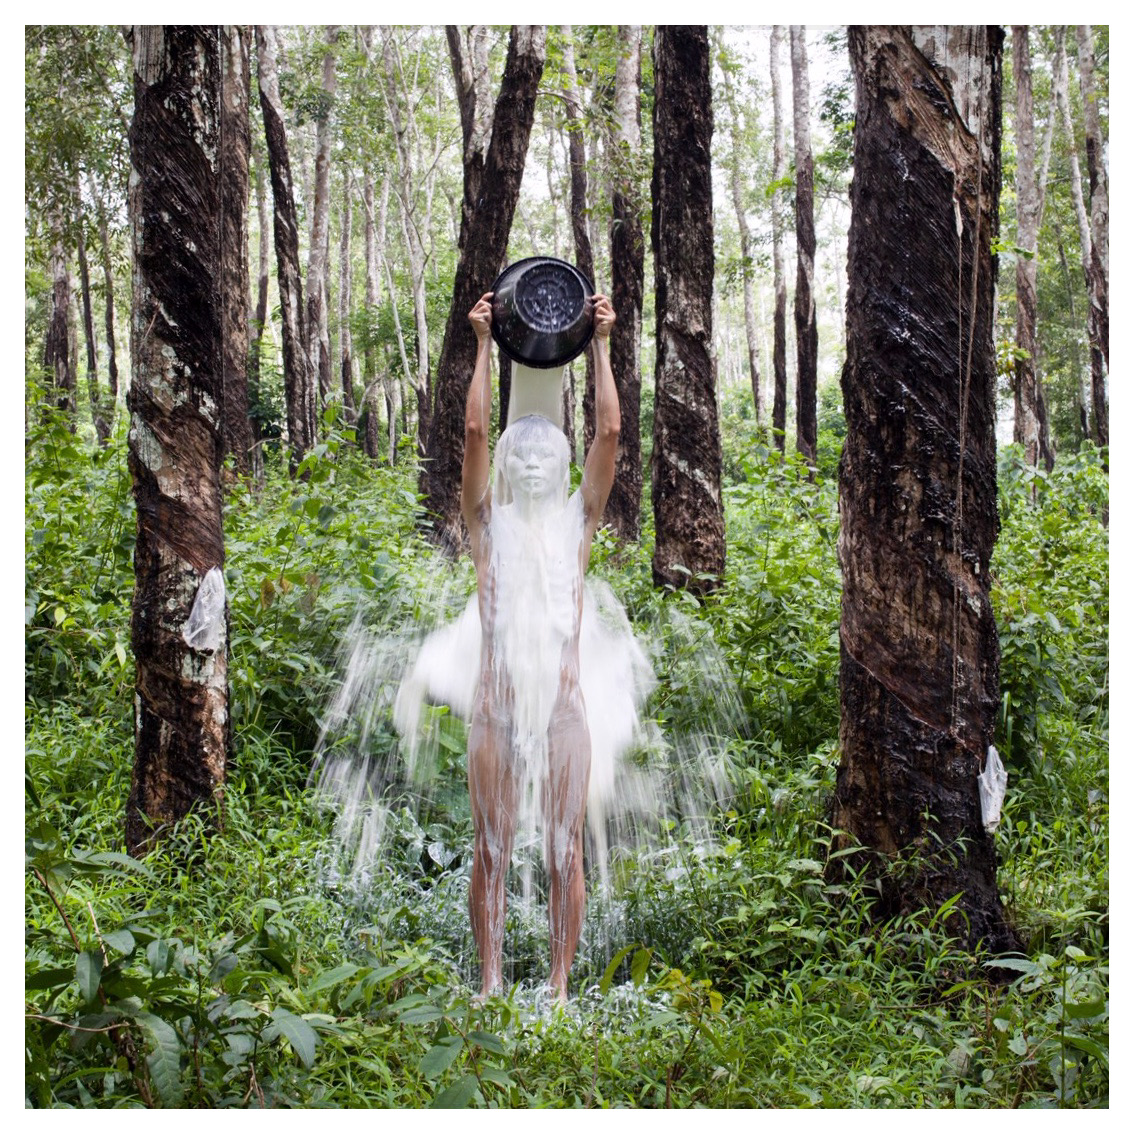 Khvay Samnang, Rubber Man, 2014, Digital C-Print, 80 x 120 cm Edition of 3 & 1AP, 120 x 180 cm Edition of 4 & 1AP (3) 2